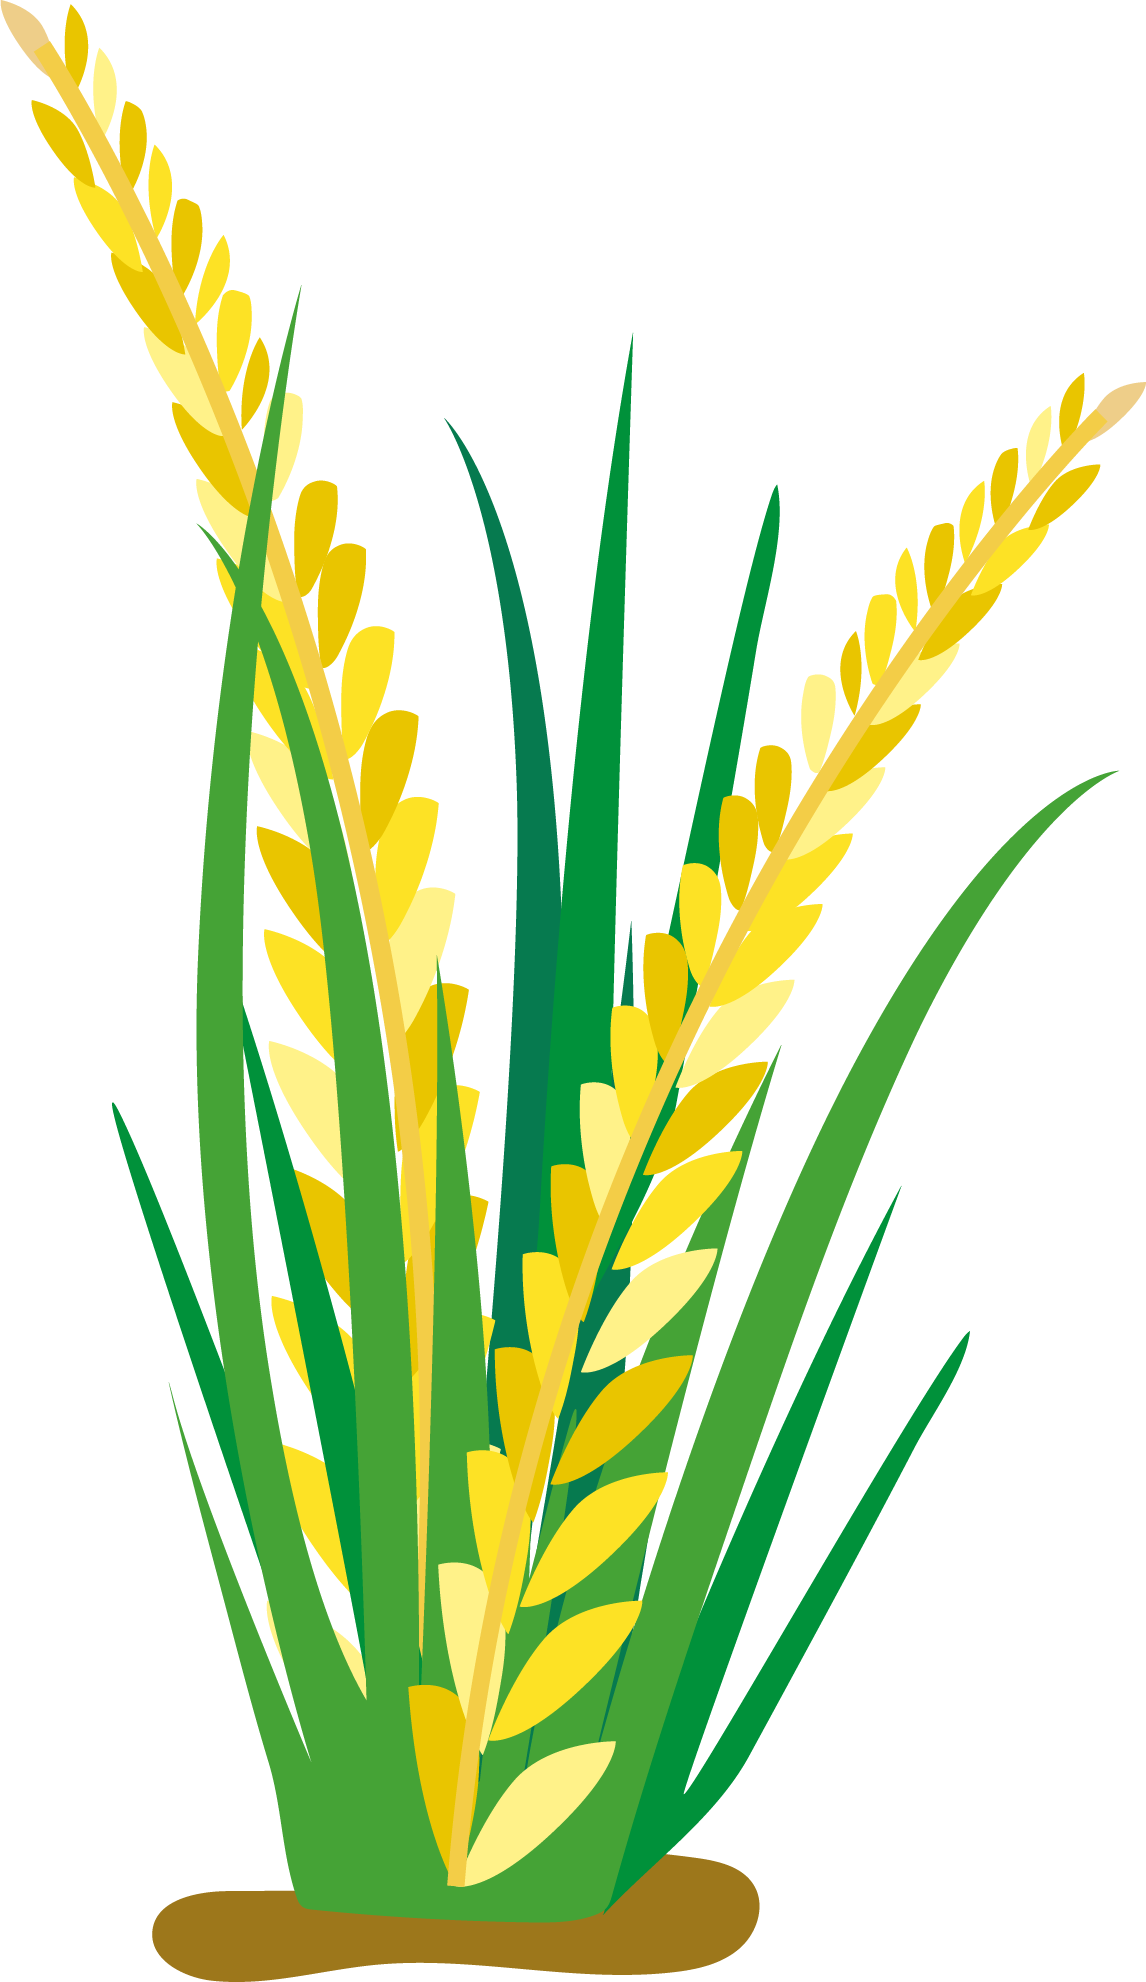 Field clipart plant field. Rice clip arts for